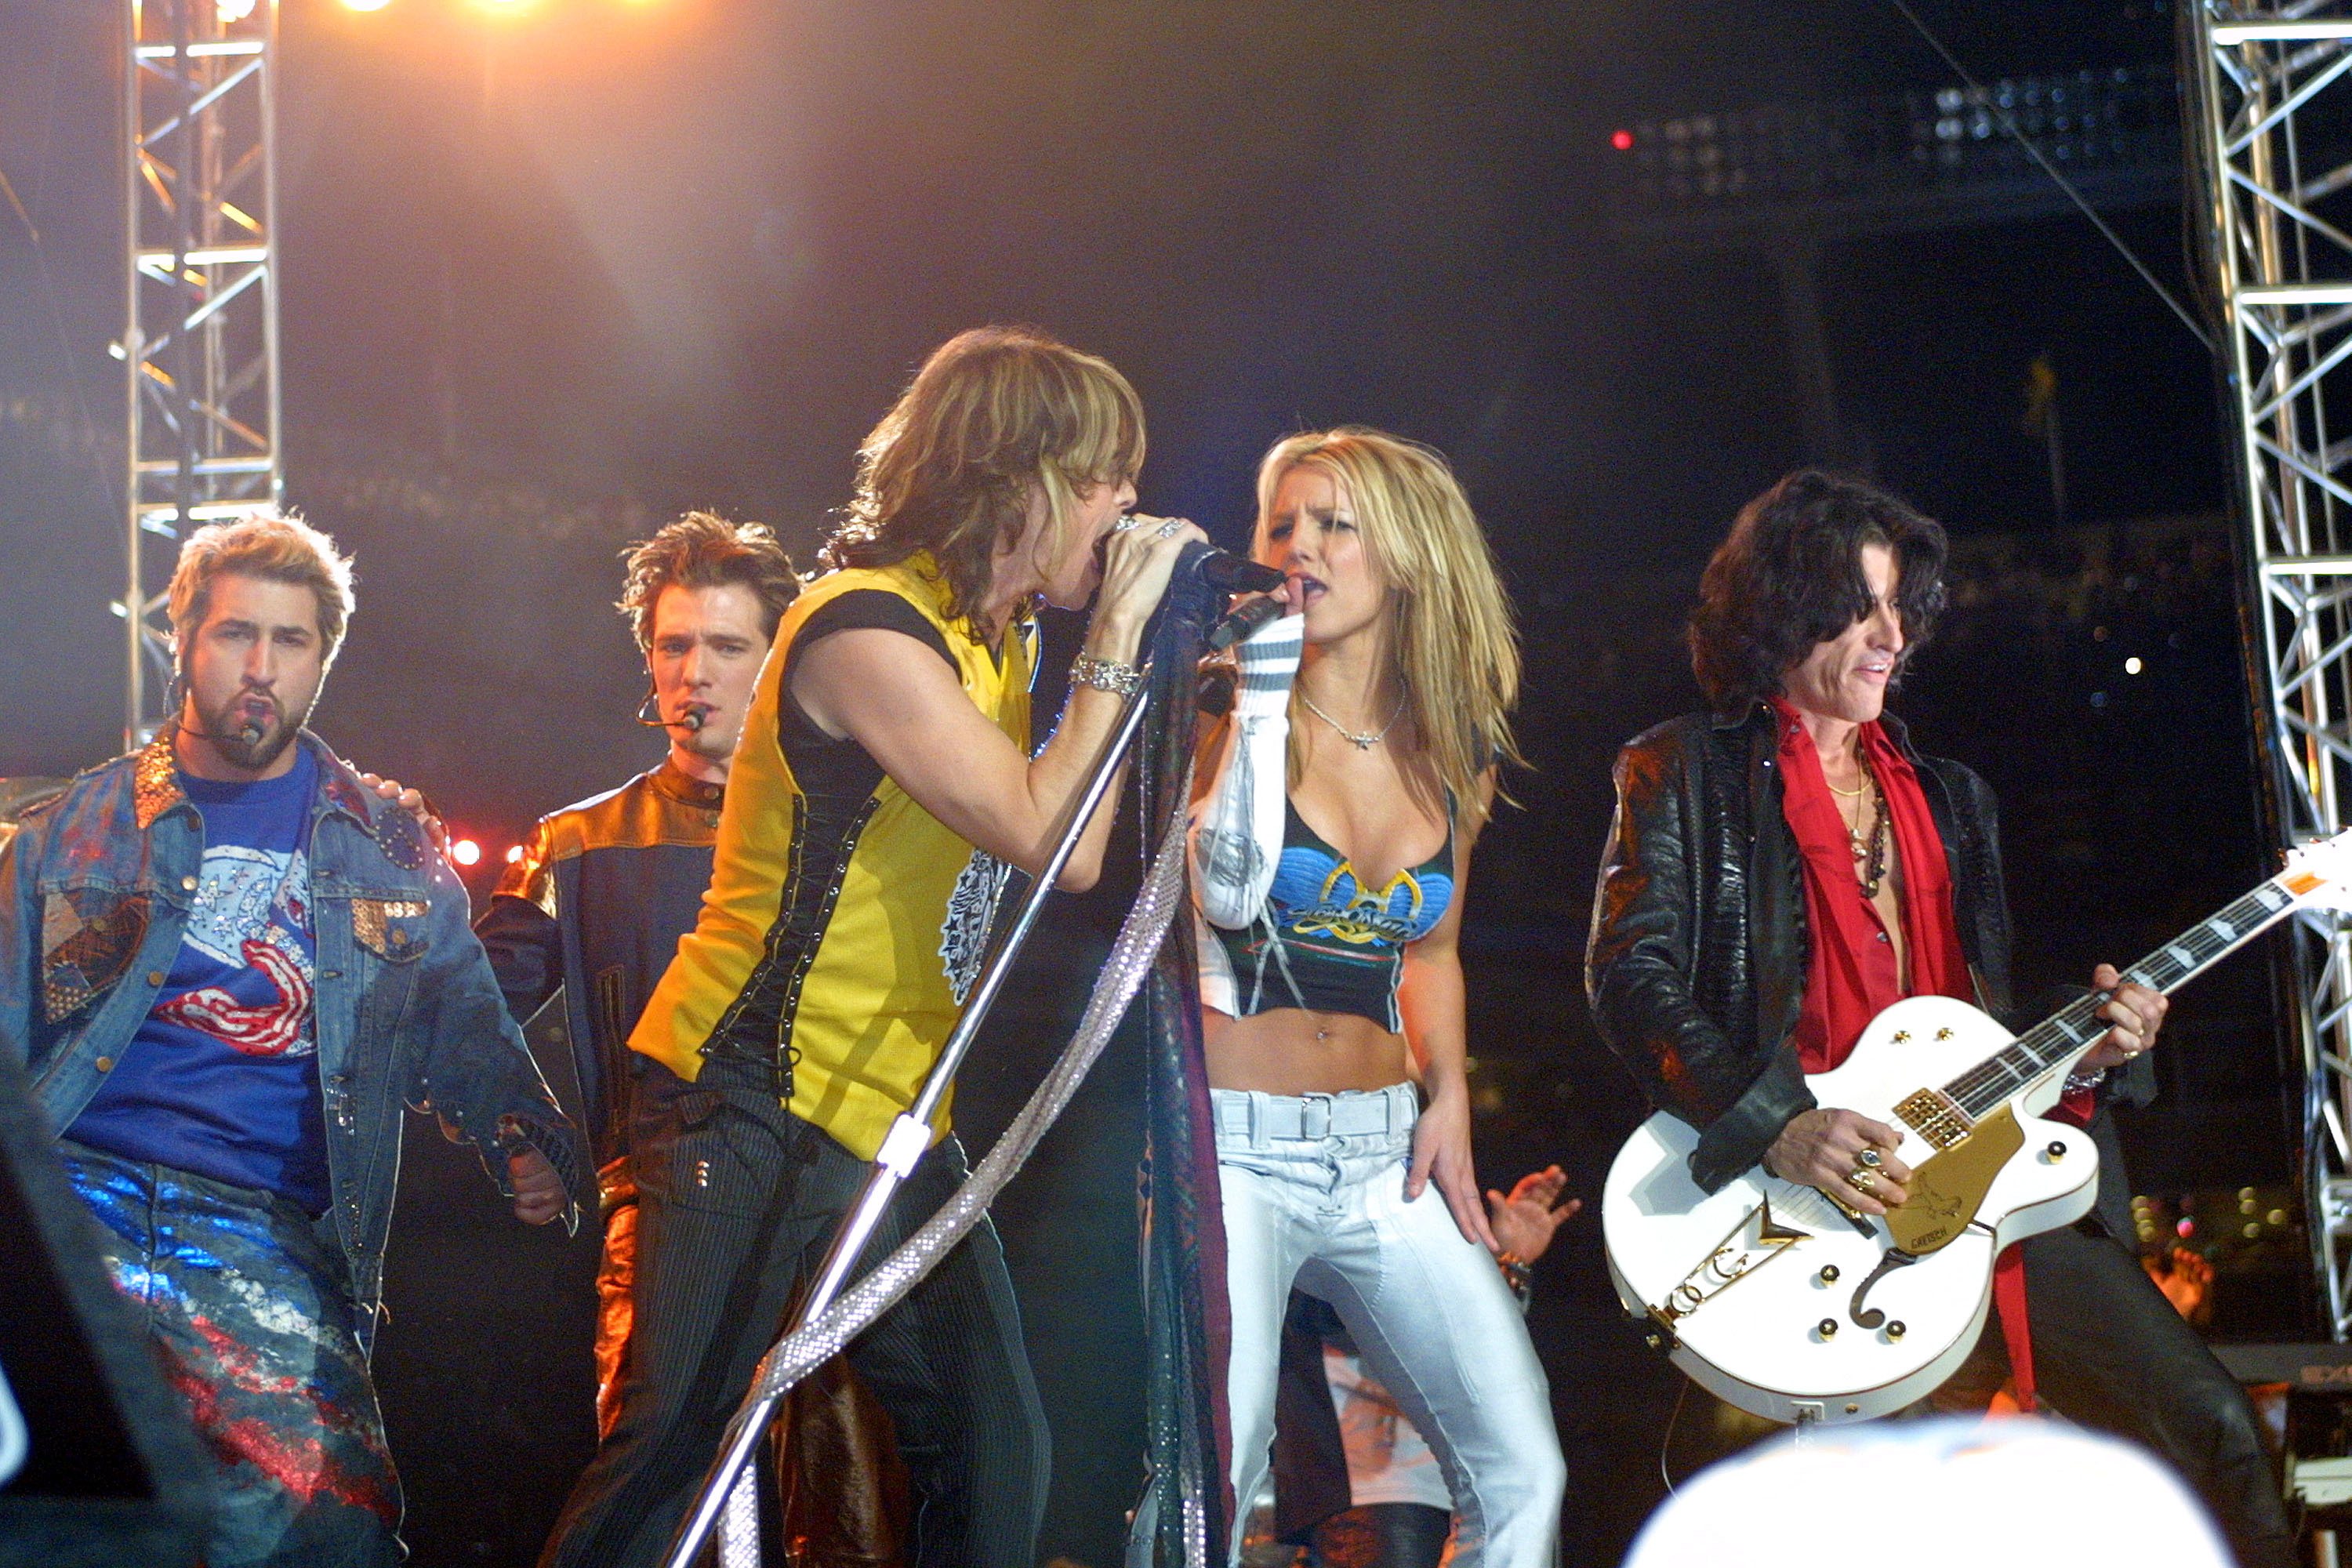 Aerosmith and *NSYNC in 2001